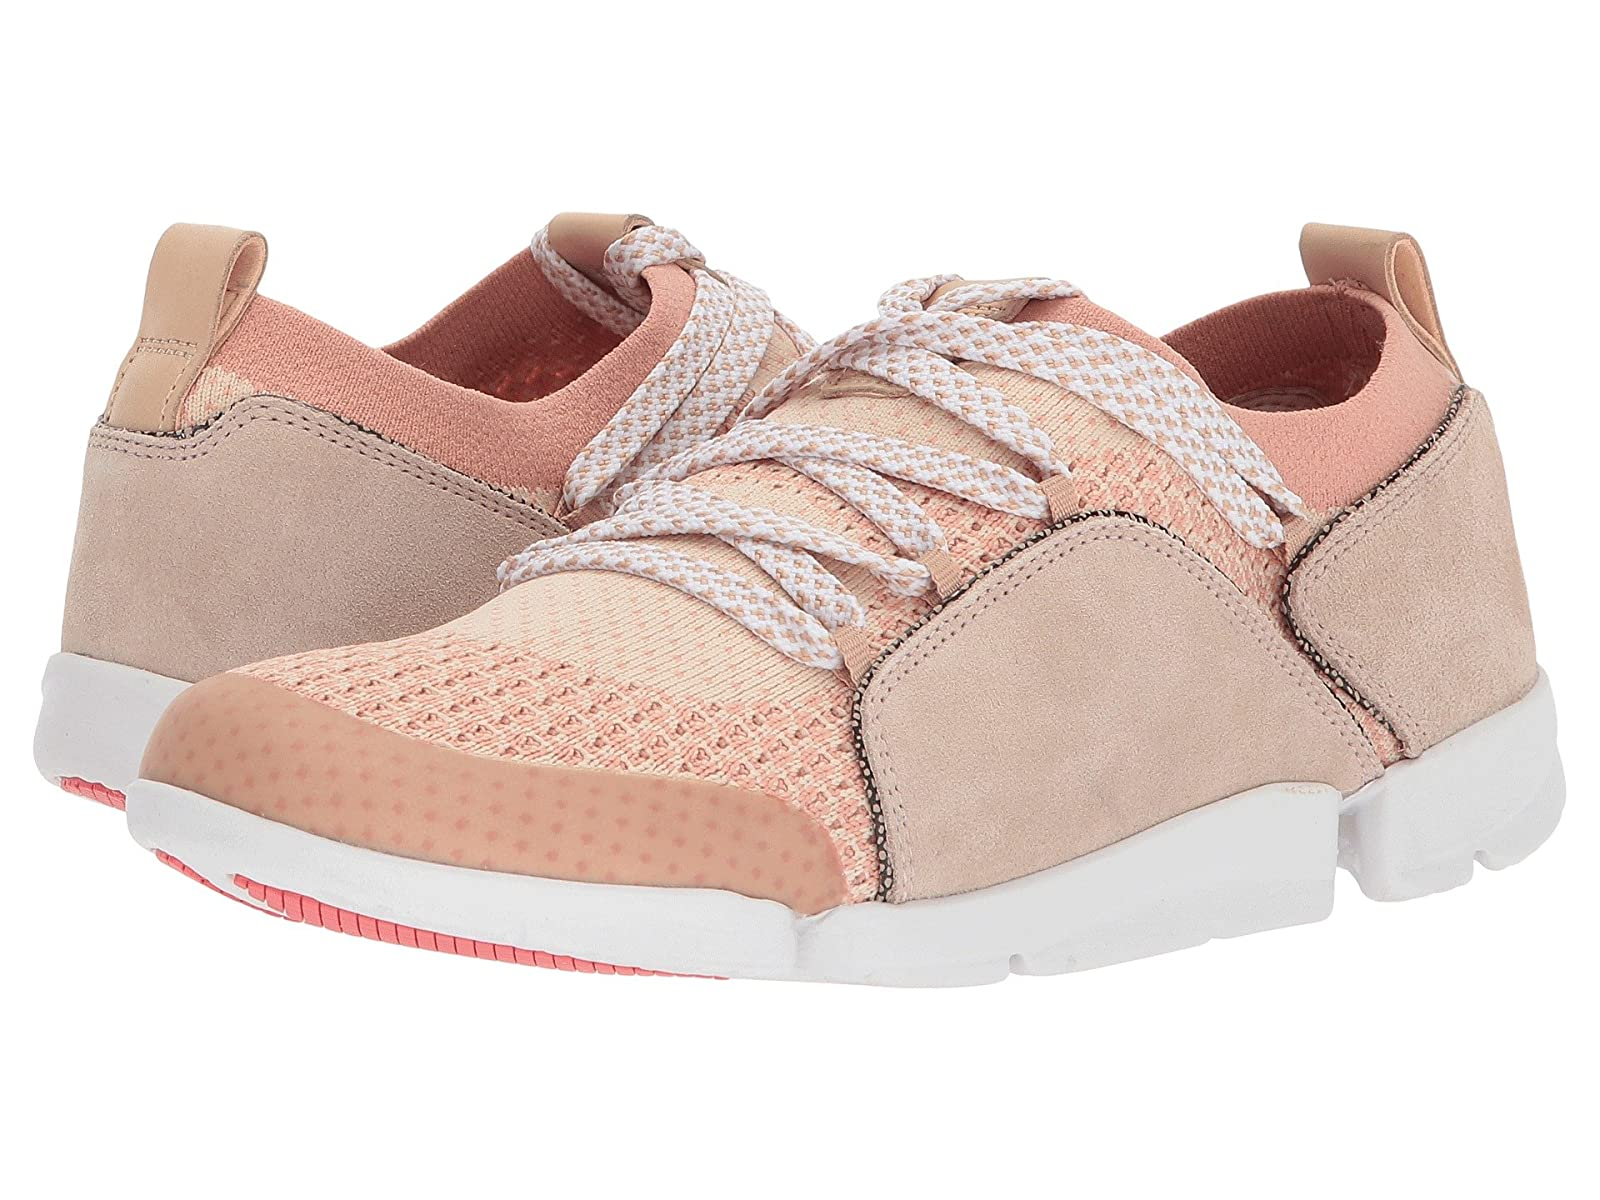 Clarks Tri AmeliaCheap and distinctive eye-catching shoes